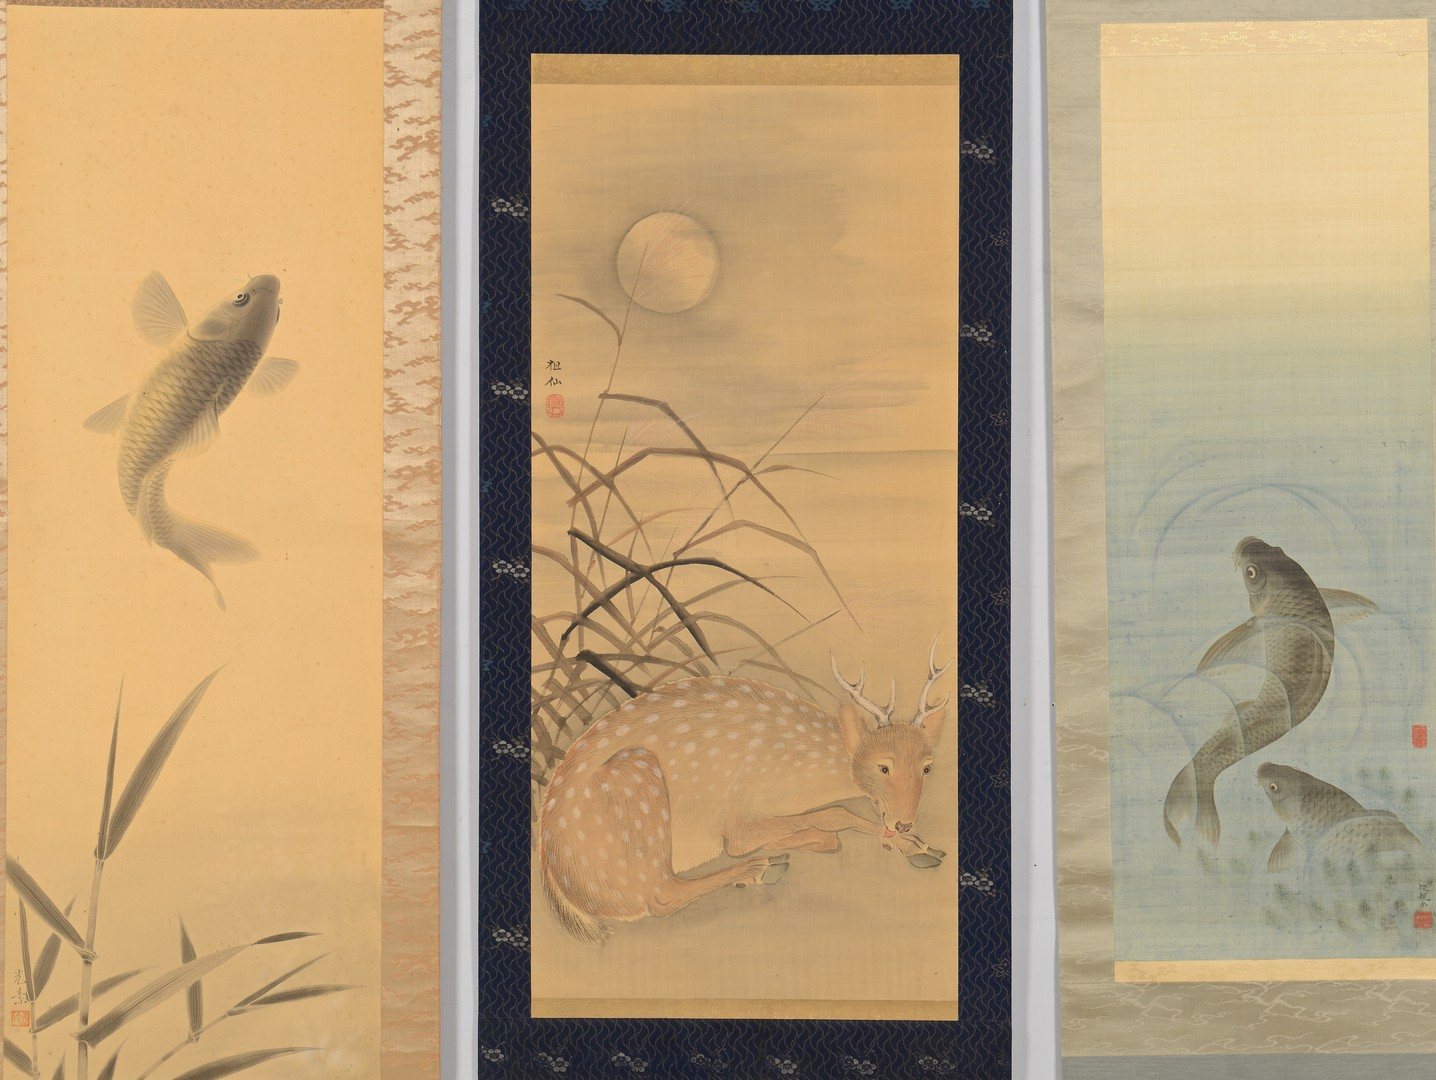 Lot 3832406: 3 Japanese Scroll Paintings, Animal Themed